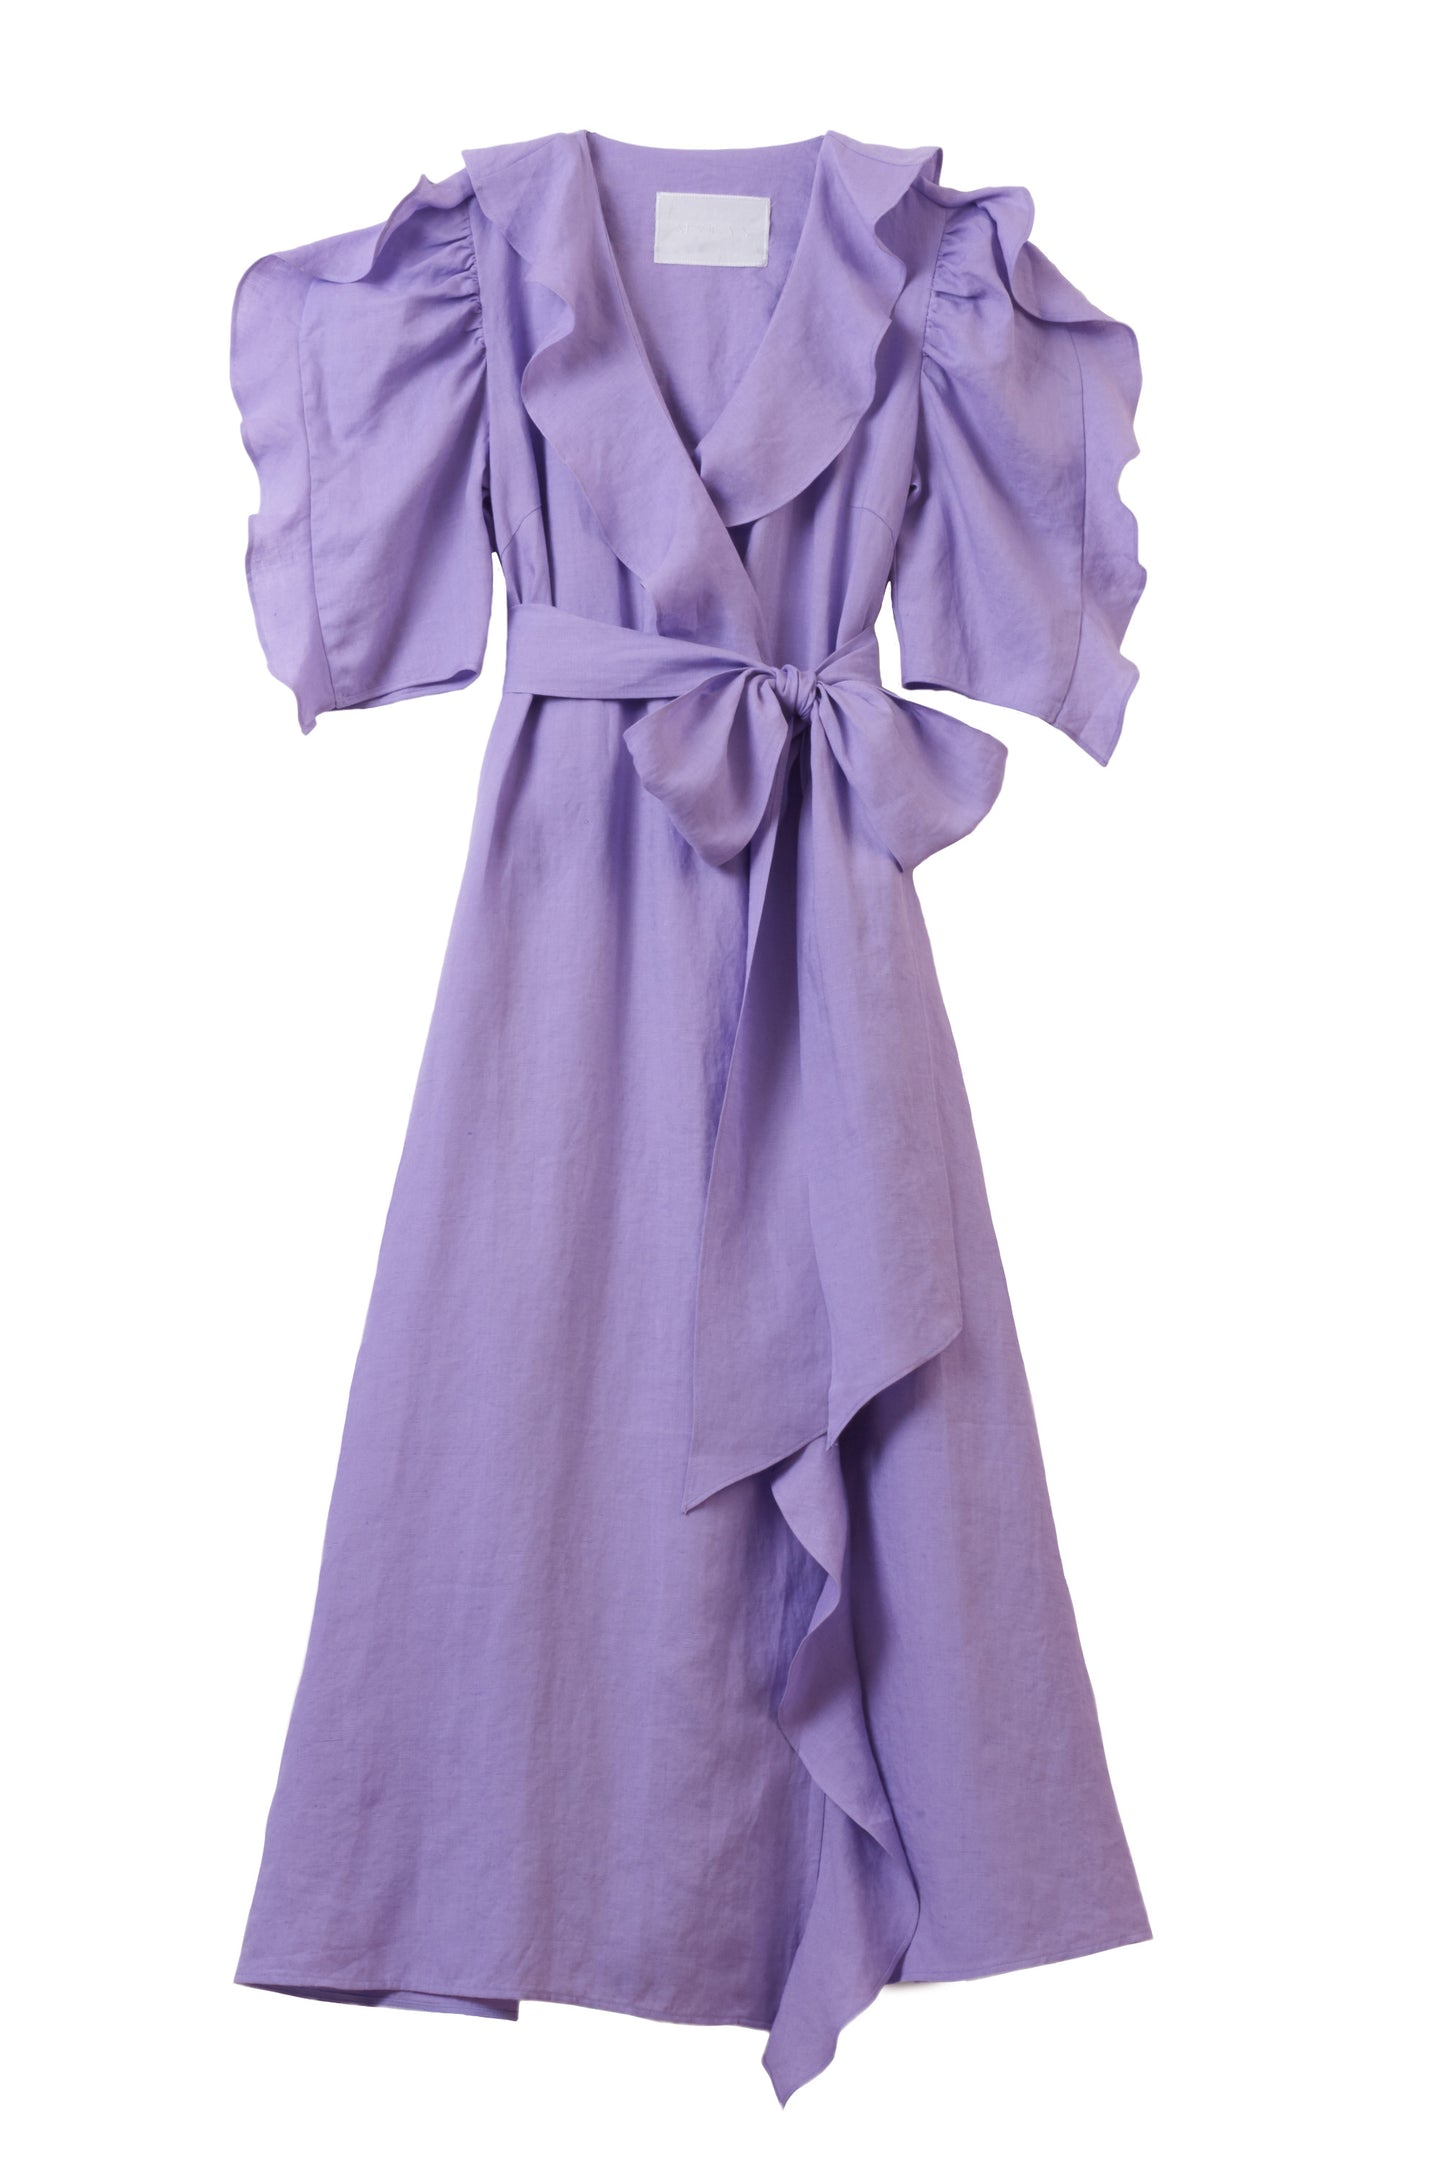 Color Linen Ruffle Wrap Dress | Lilac